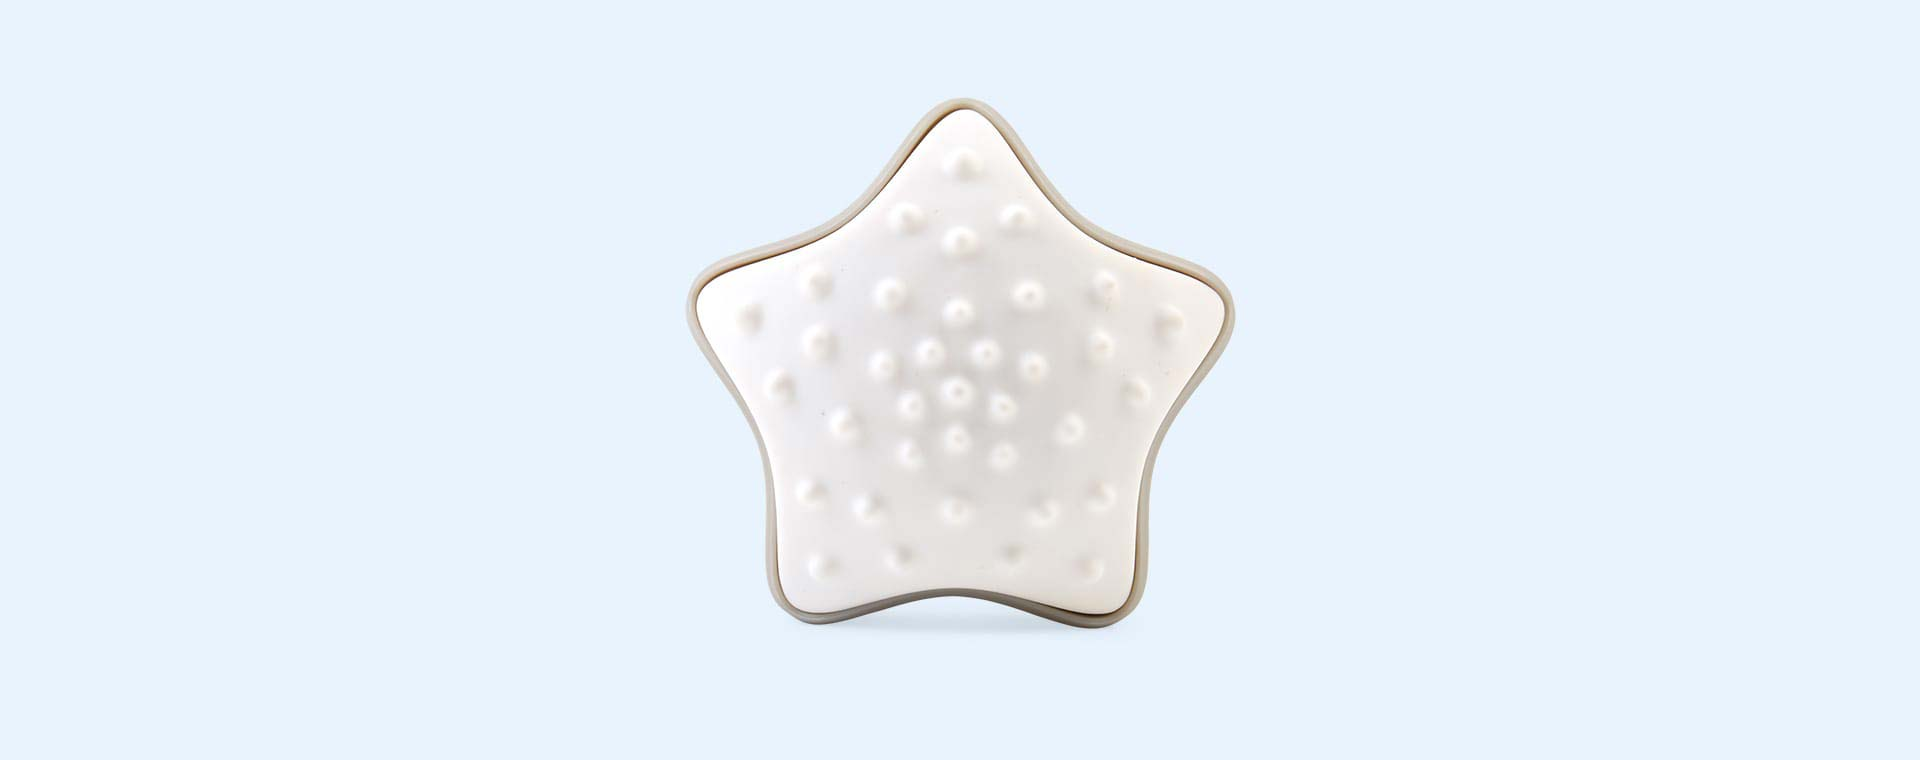 White Shnuggle Wishy Bath Toy